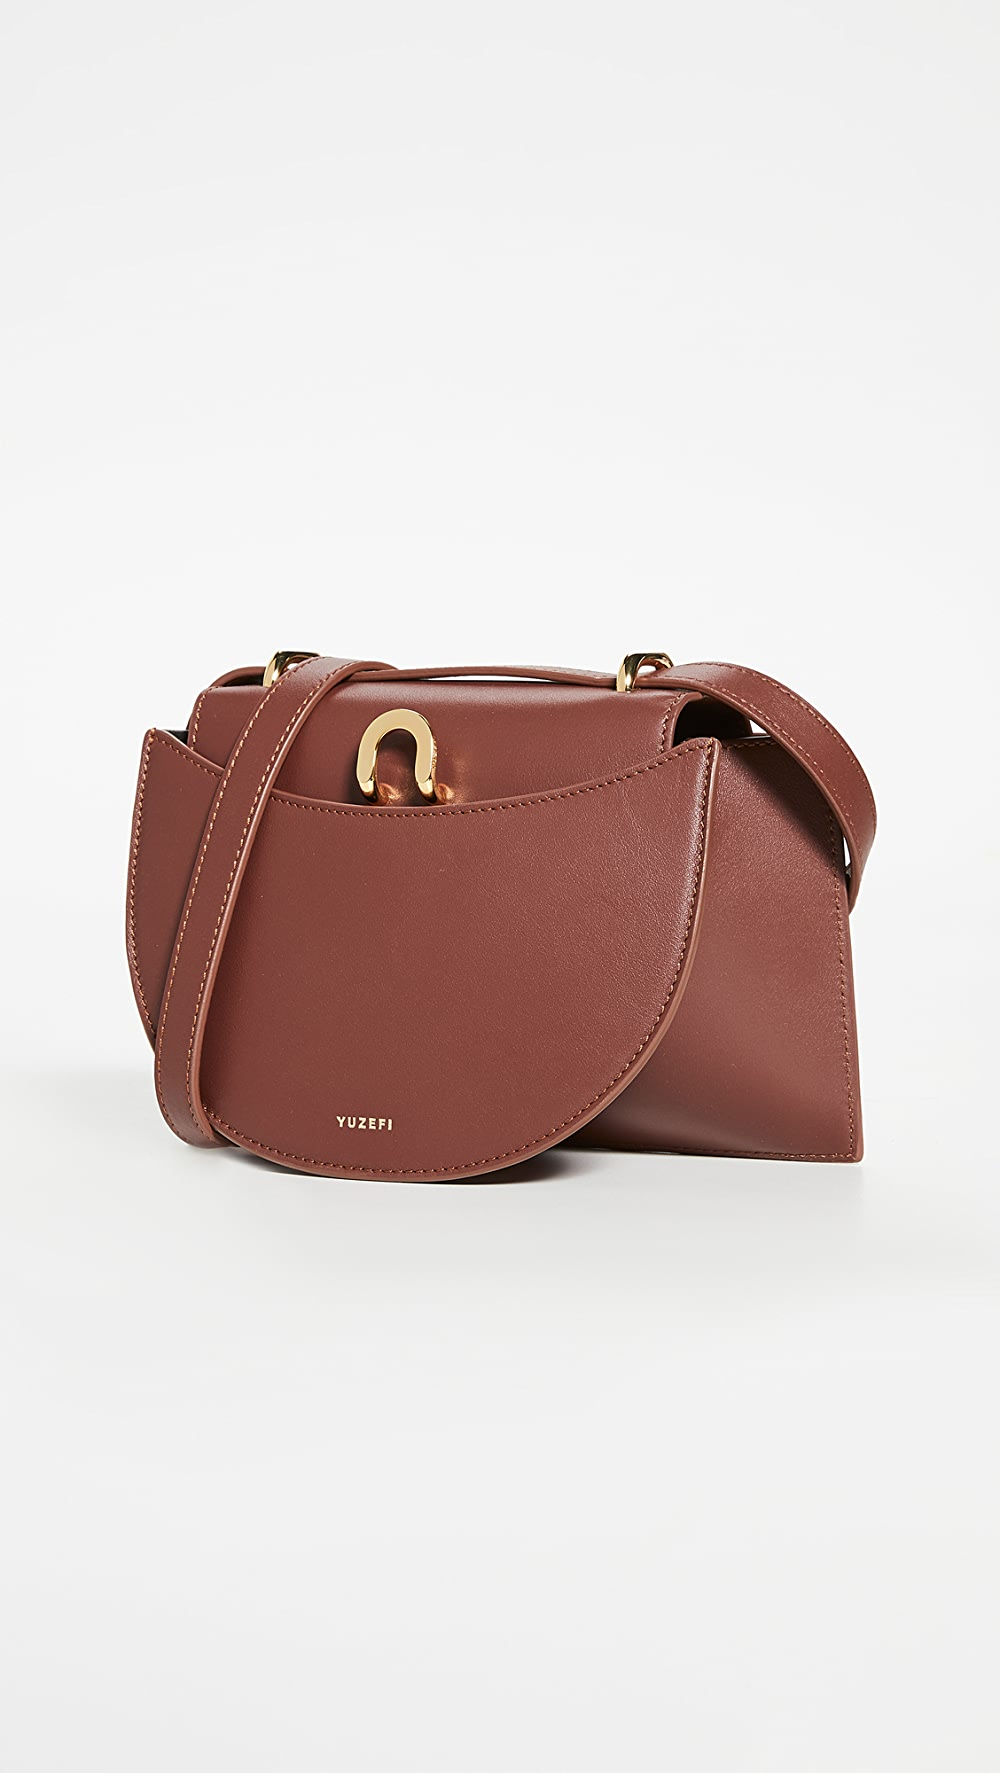 Frank Yuzefi - Edith Bag Elegant Shape